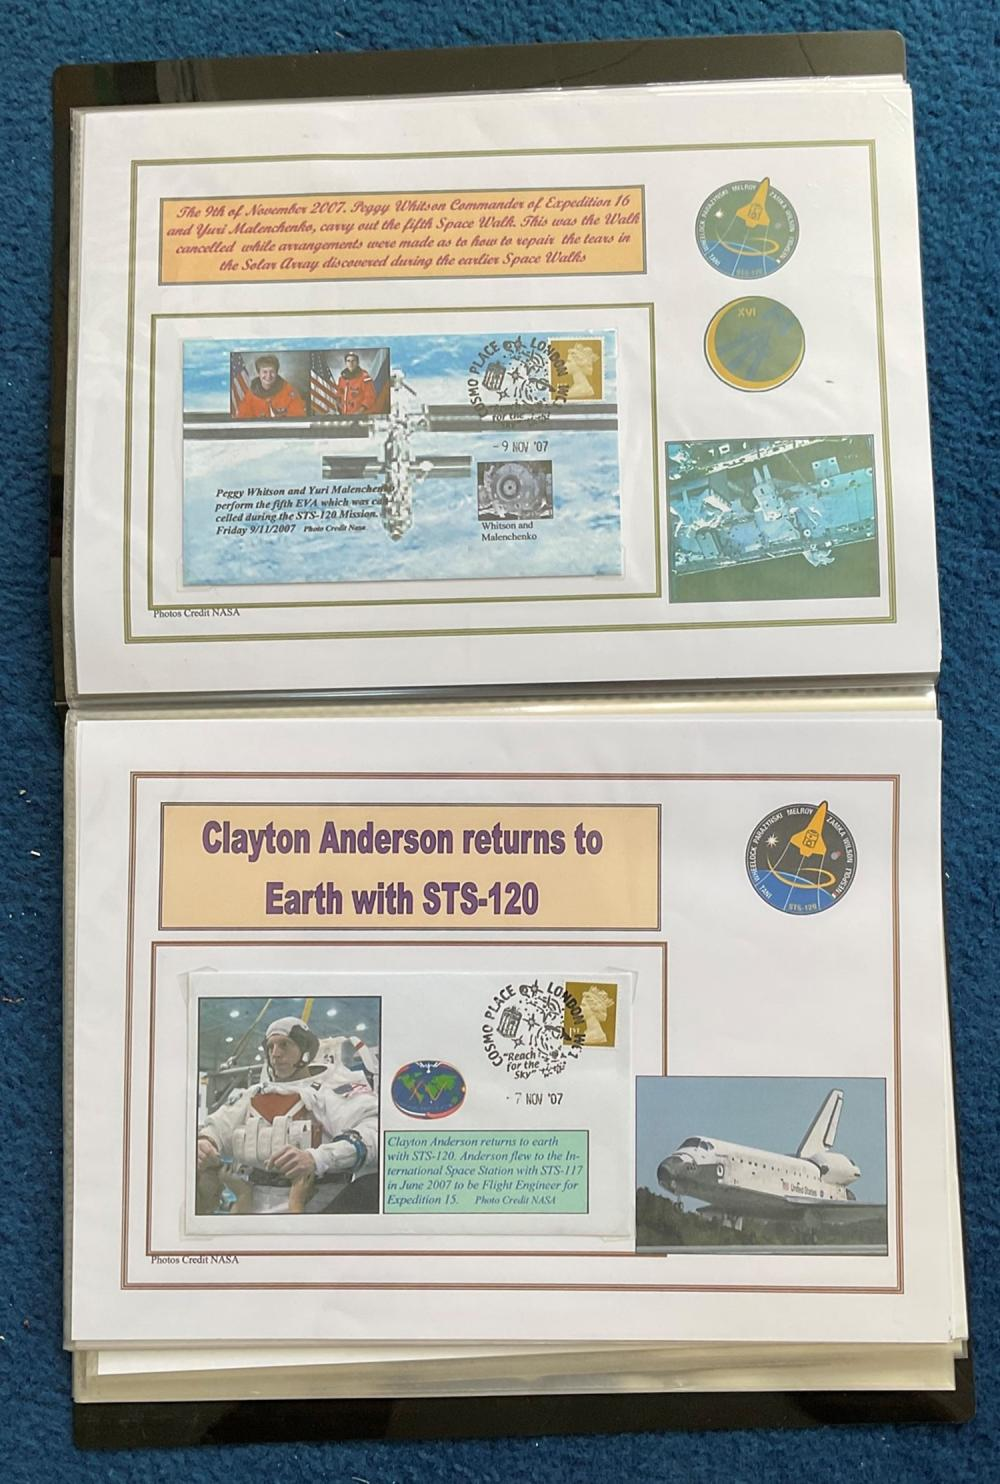 16 Space Exploration FDC with Stamps and FDI Postmarks, Housed in a Binder with Stunning NASA